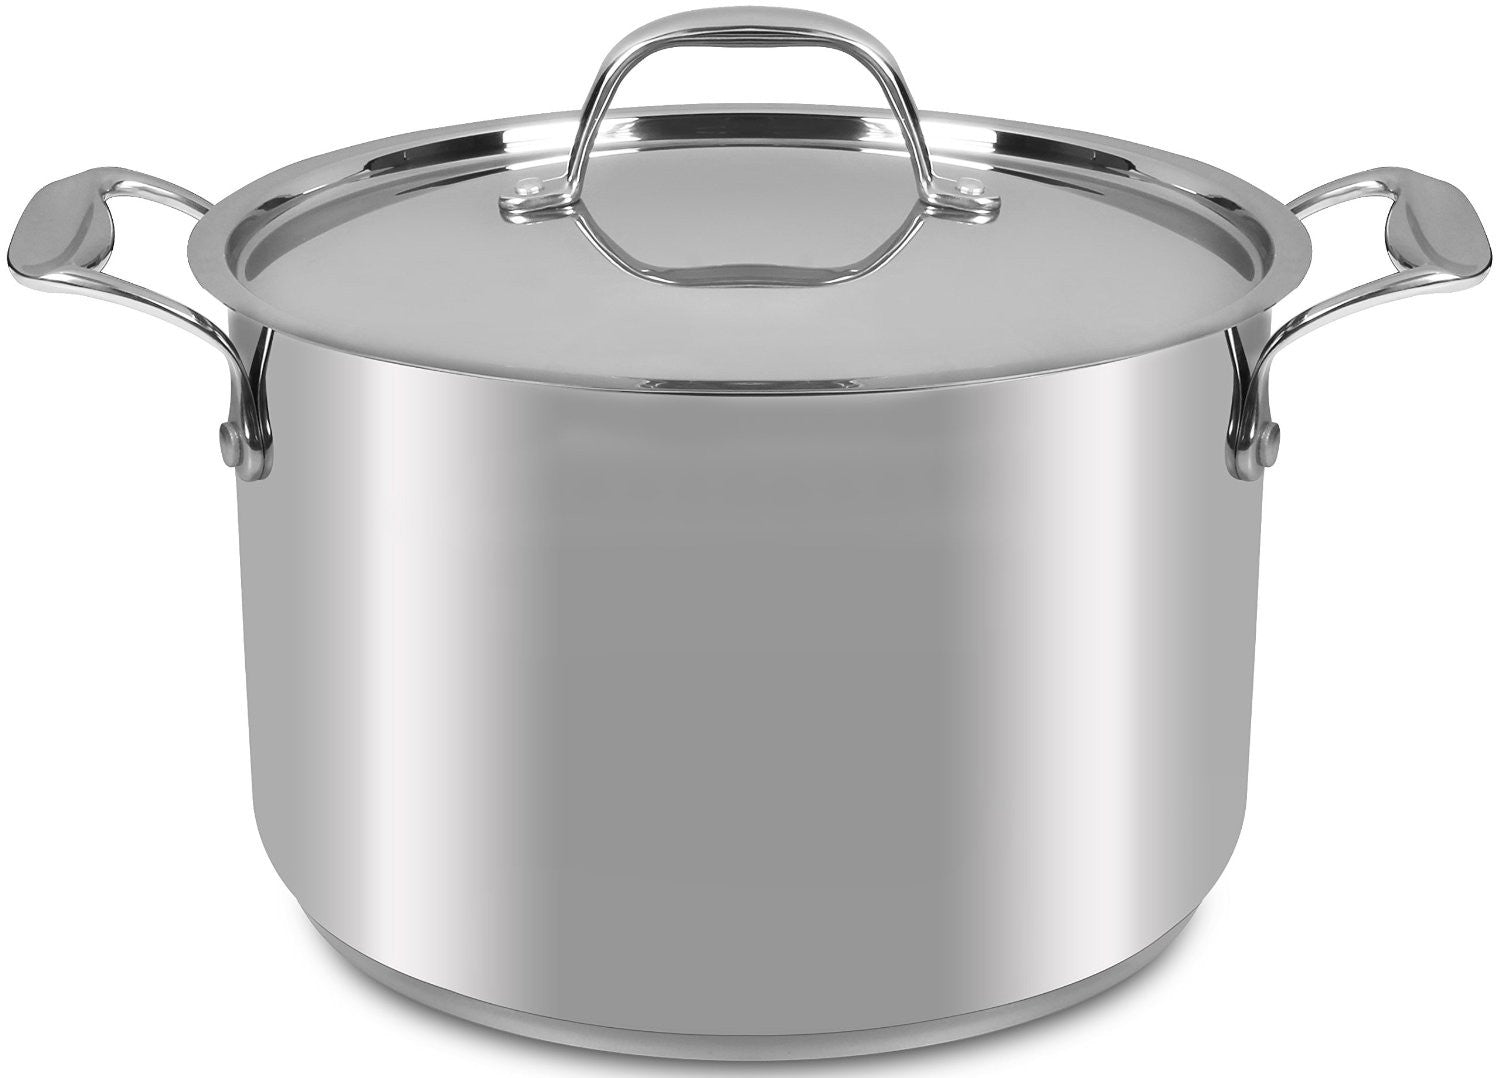 Premium Quality Stainless Steel Stockpot